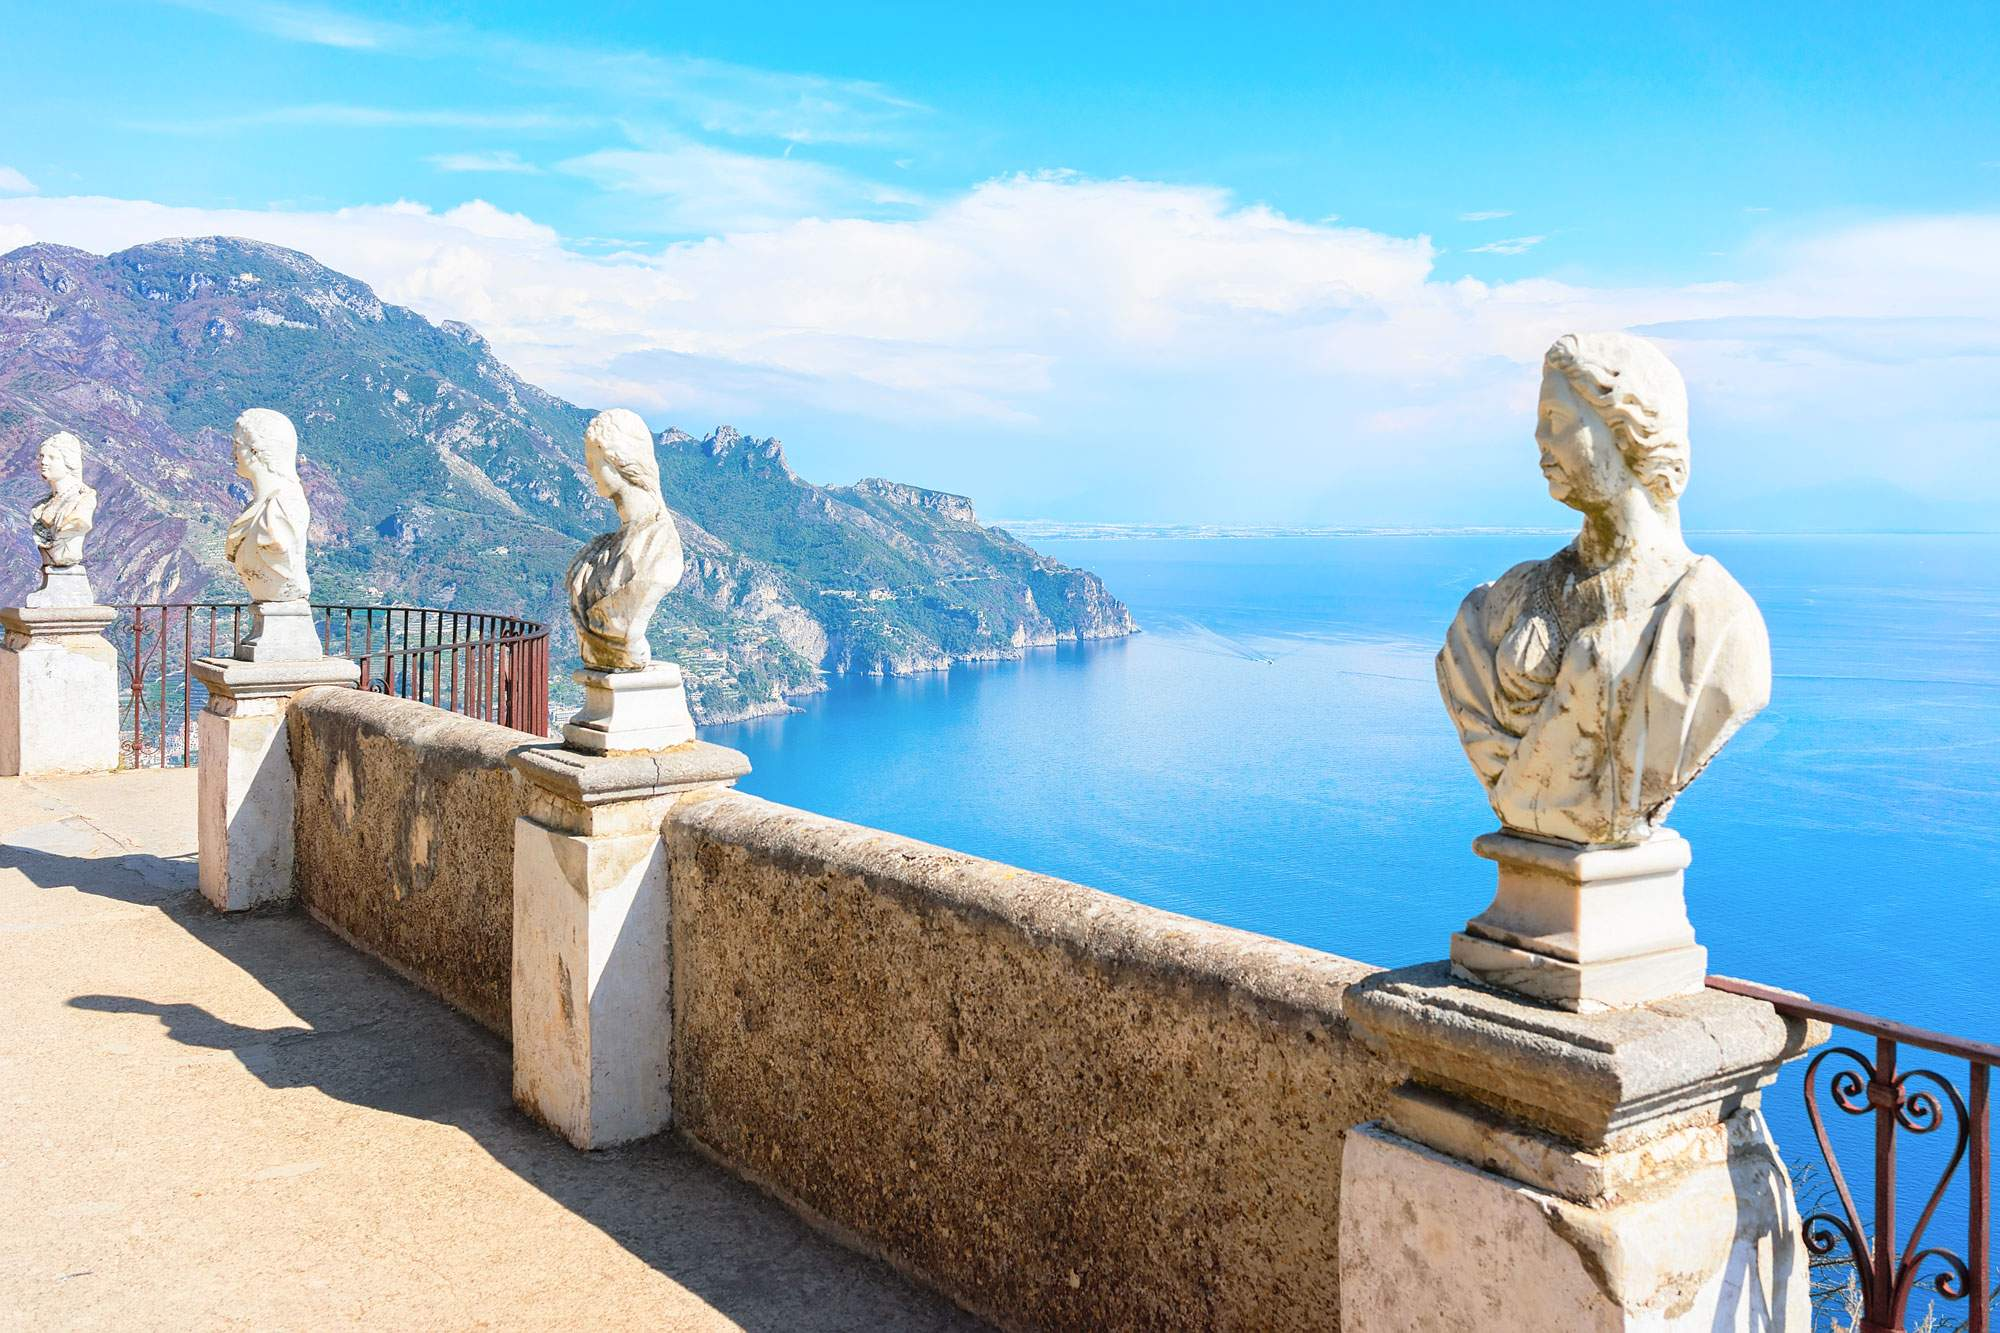 5 Reasons to Check Out Amalfi's Ravello Festival